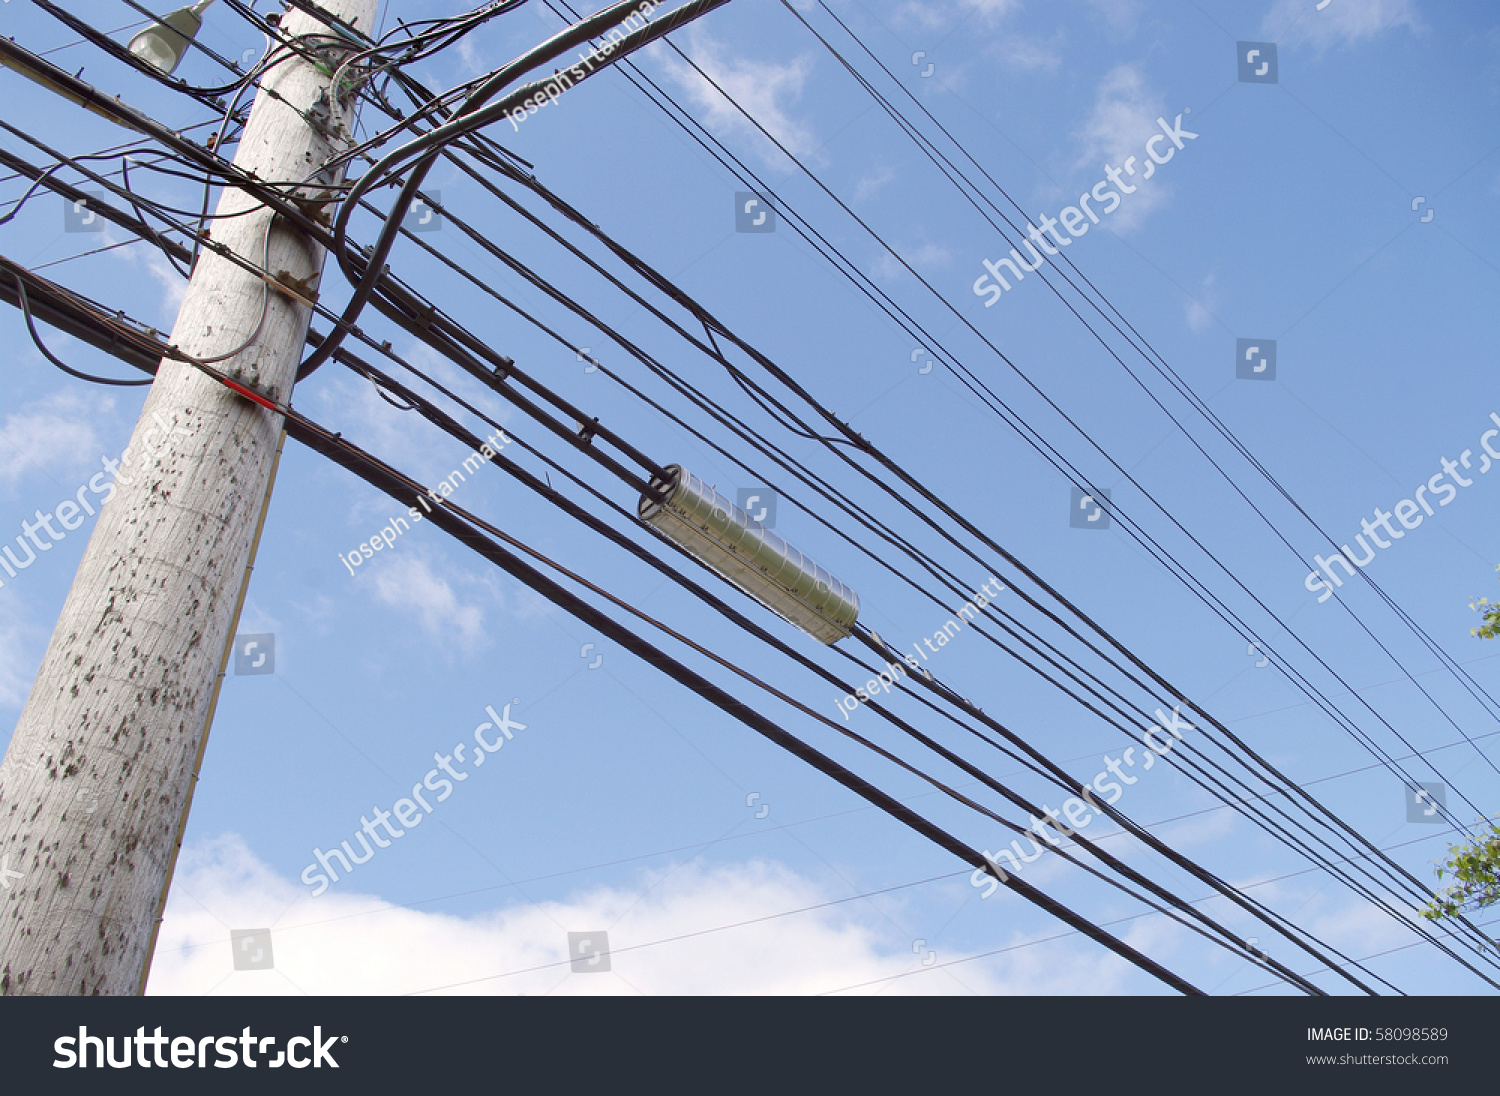 High Tension Hydro Power Electricity Cable Stock Photo (Edit Now ...